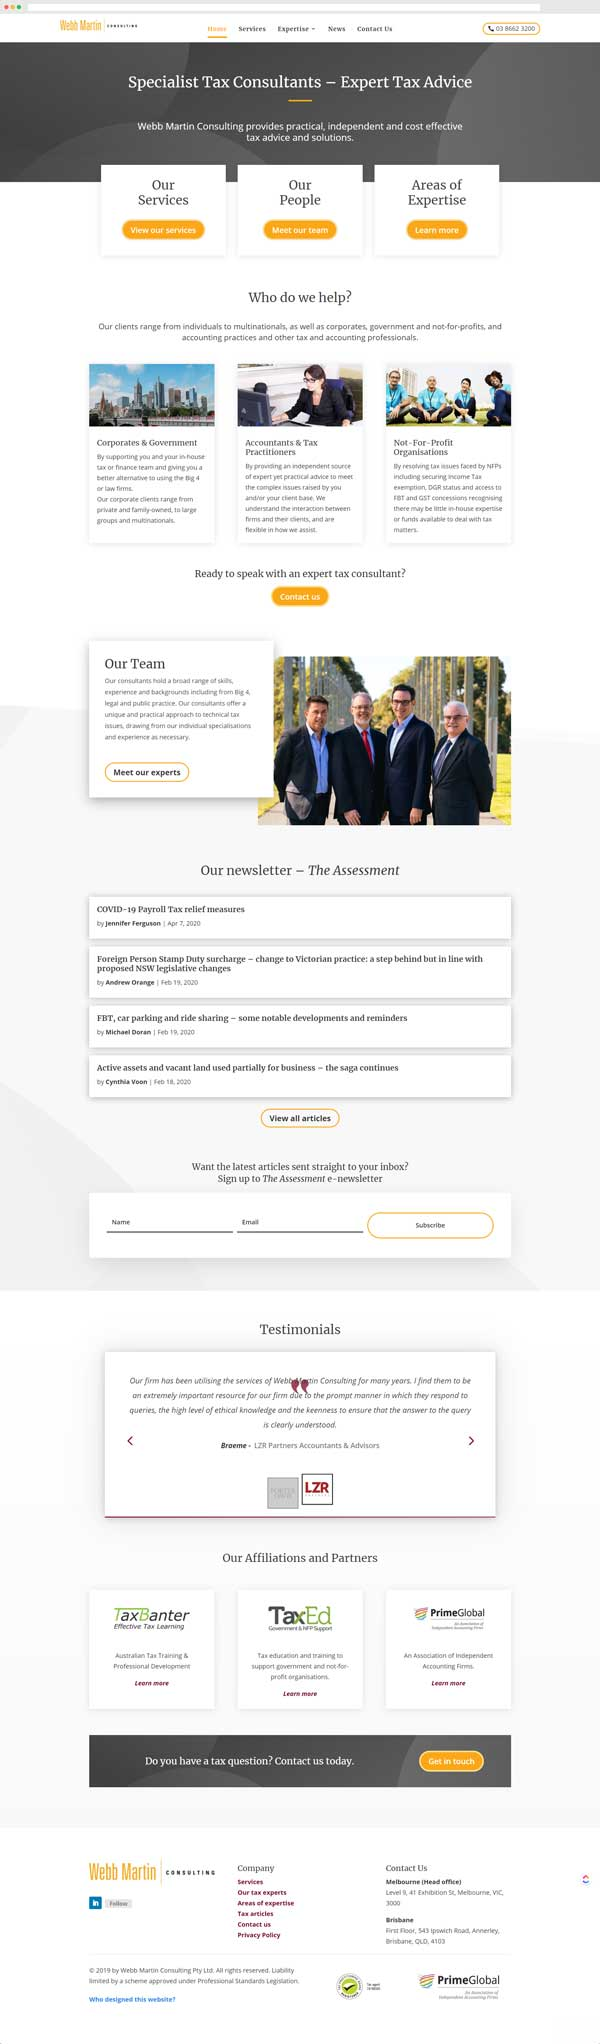 Webb Martin Consulting Homepage Mockup